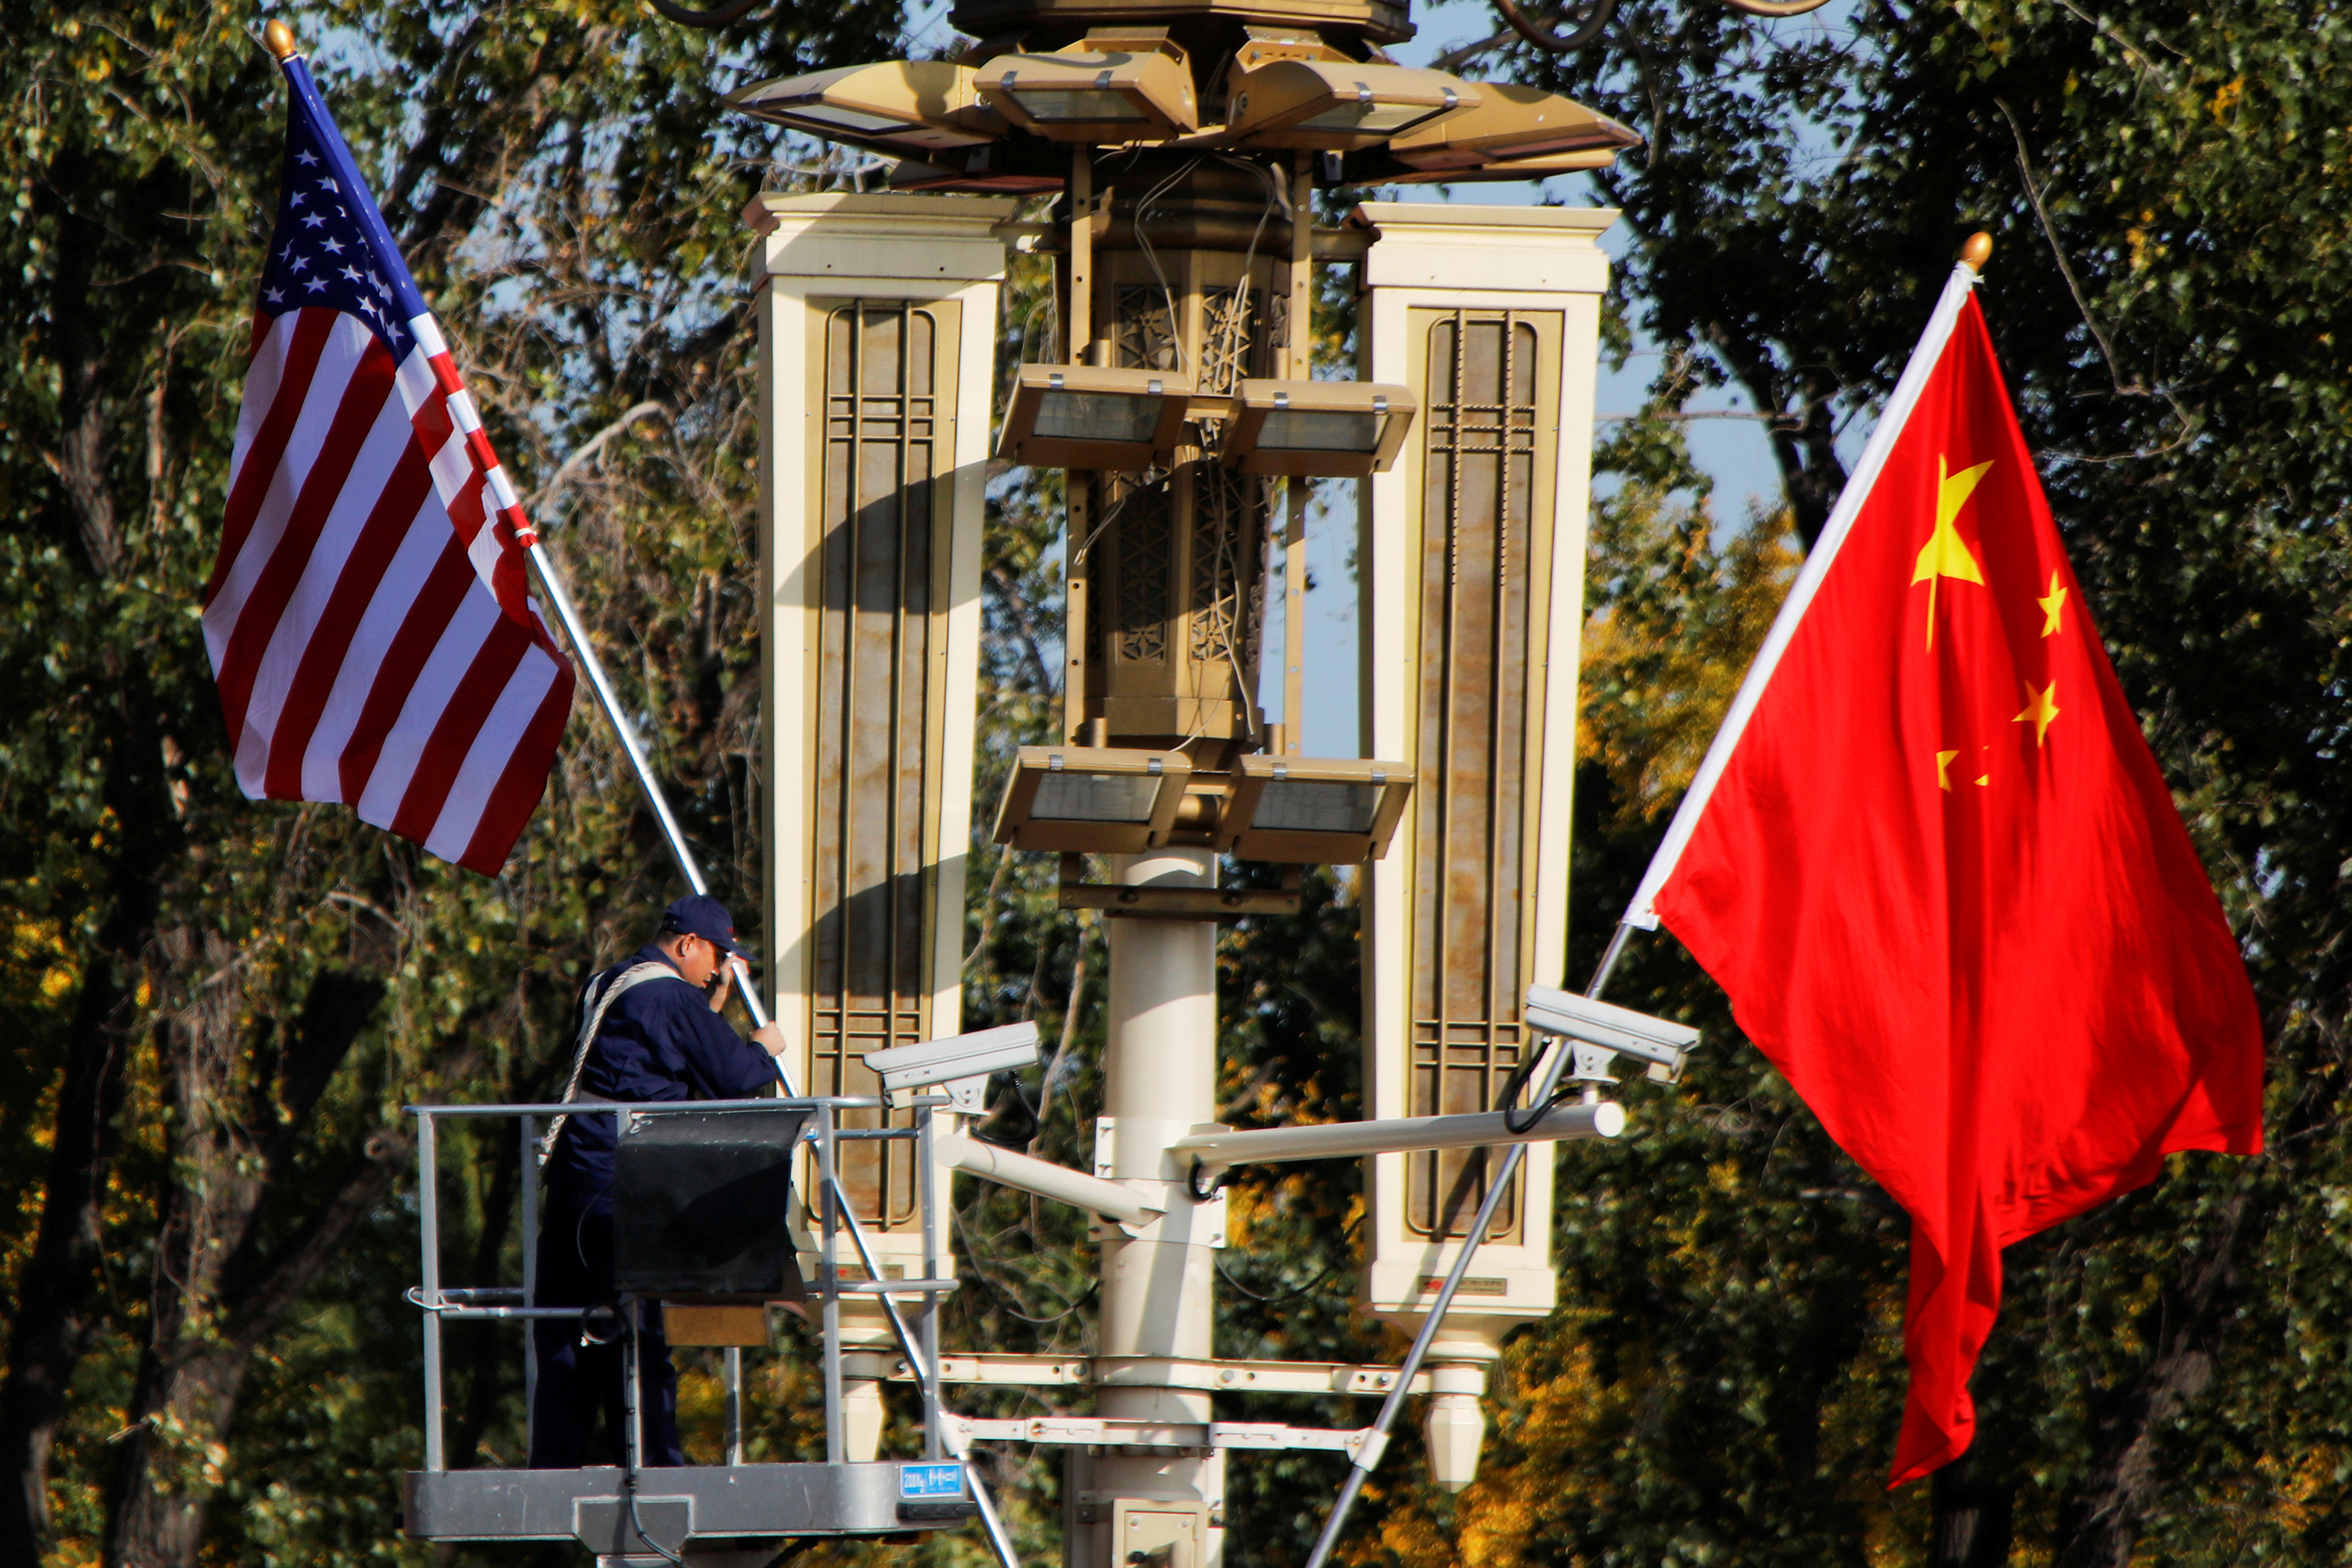 FILE PHOTO: A worker places U.S. and China flags near the Forbidden City ahead of a visit by U.S. President Donald Trump to Beijing, in Beijing, China November 8, 2017. REUTERS/Damir Sagolj/File Photo